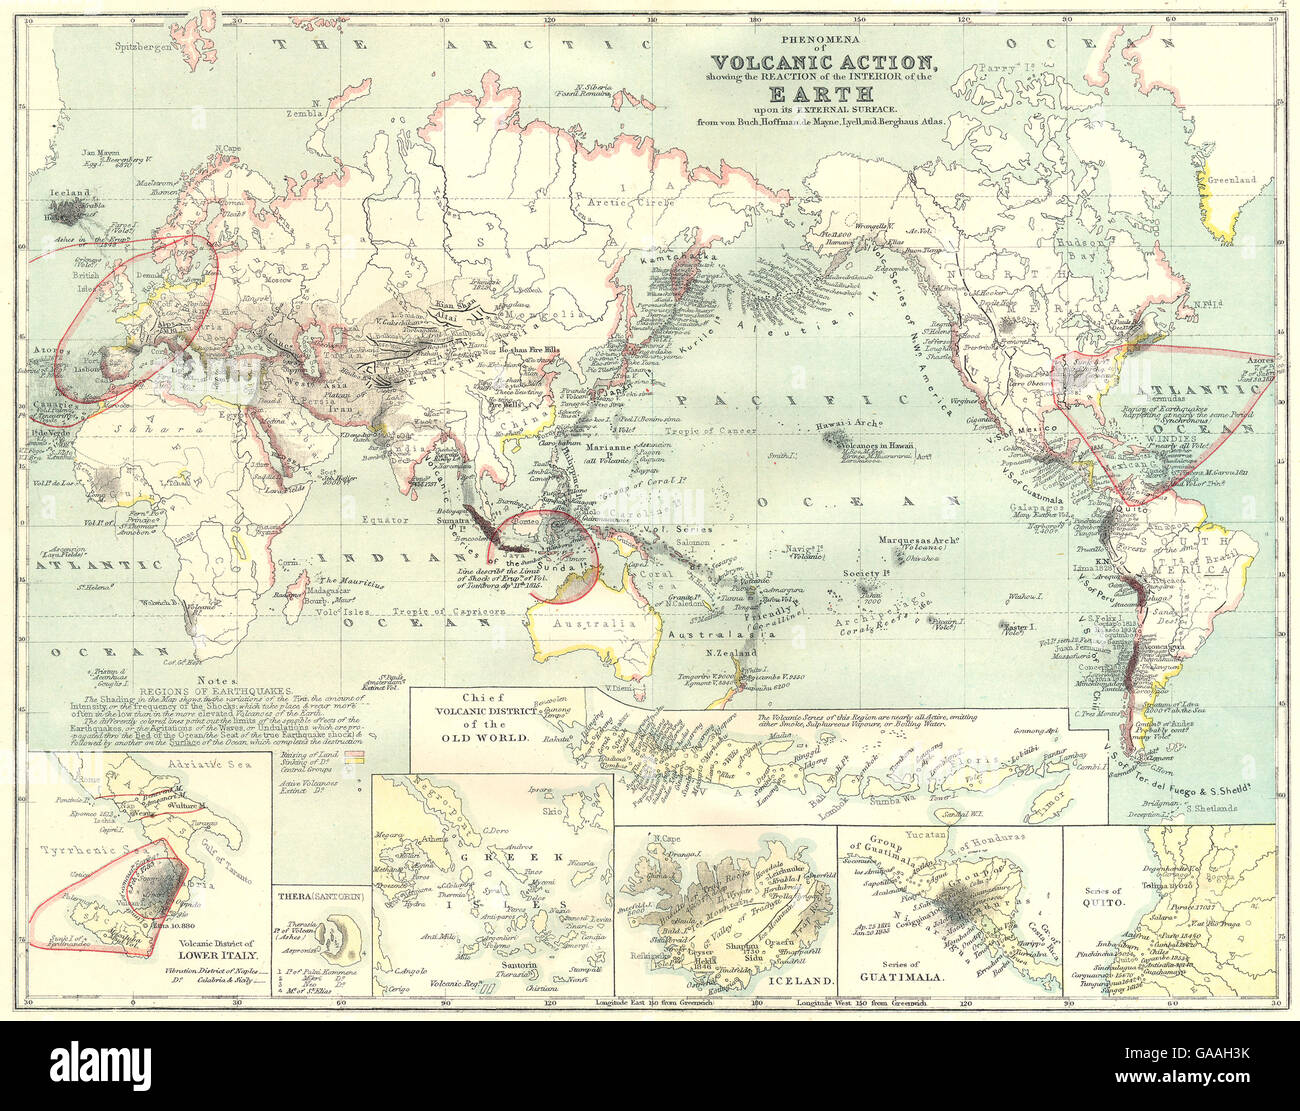 Map Greece Italy Stock Photos & Map Greece Italy Stock Images - Alamy